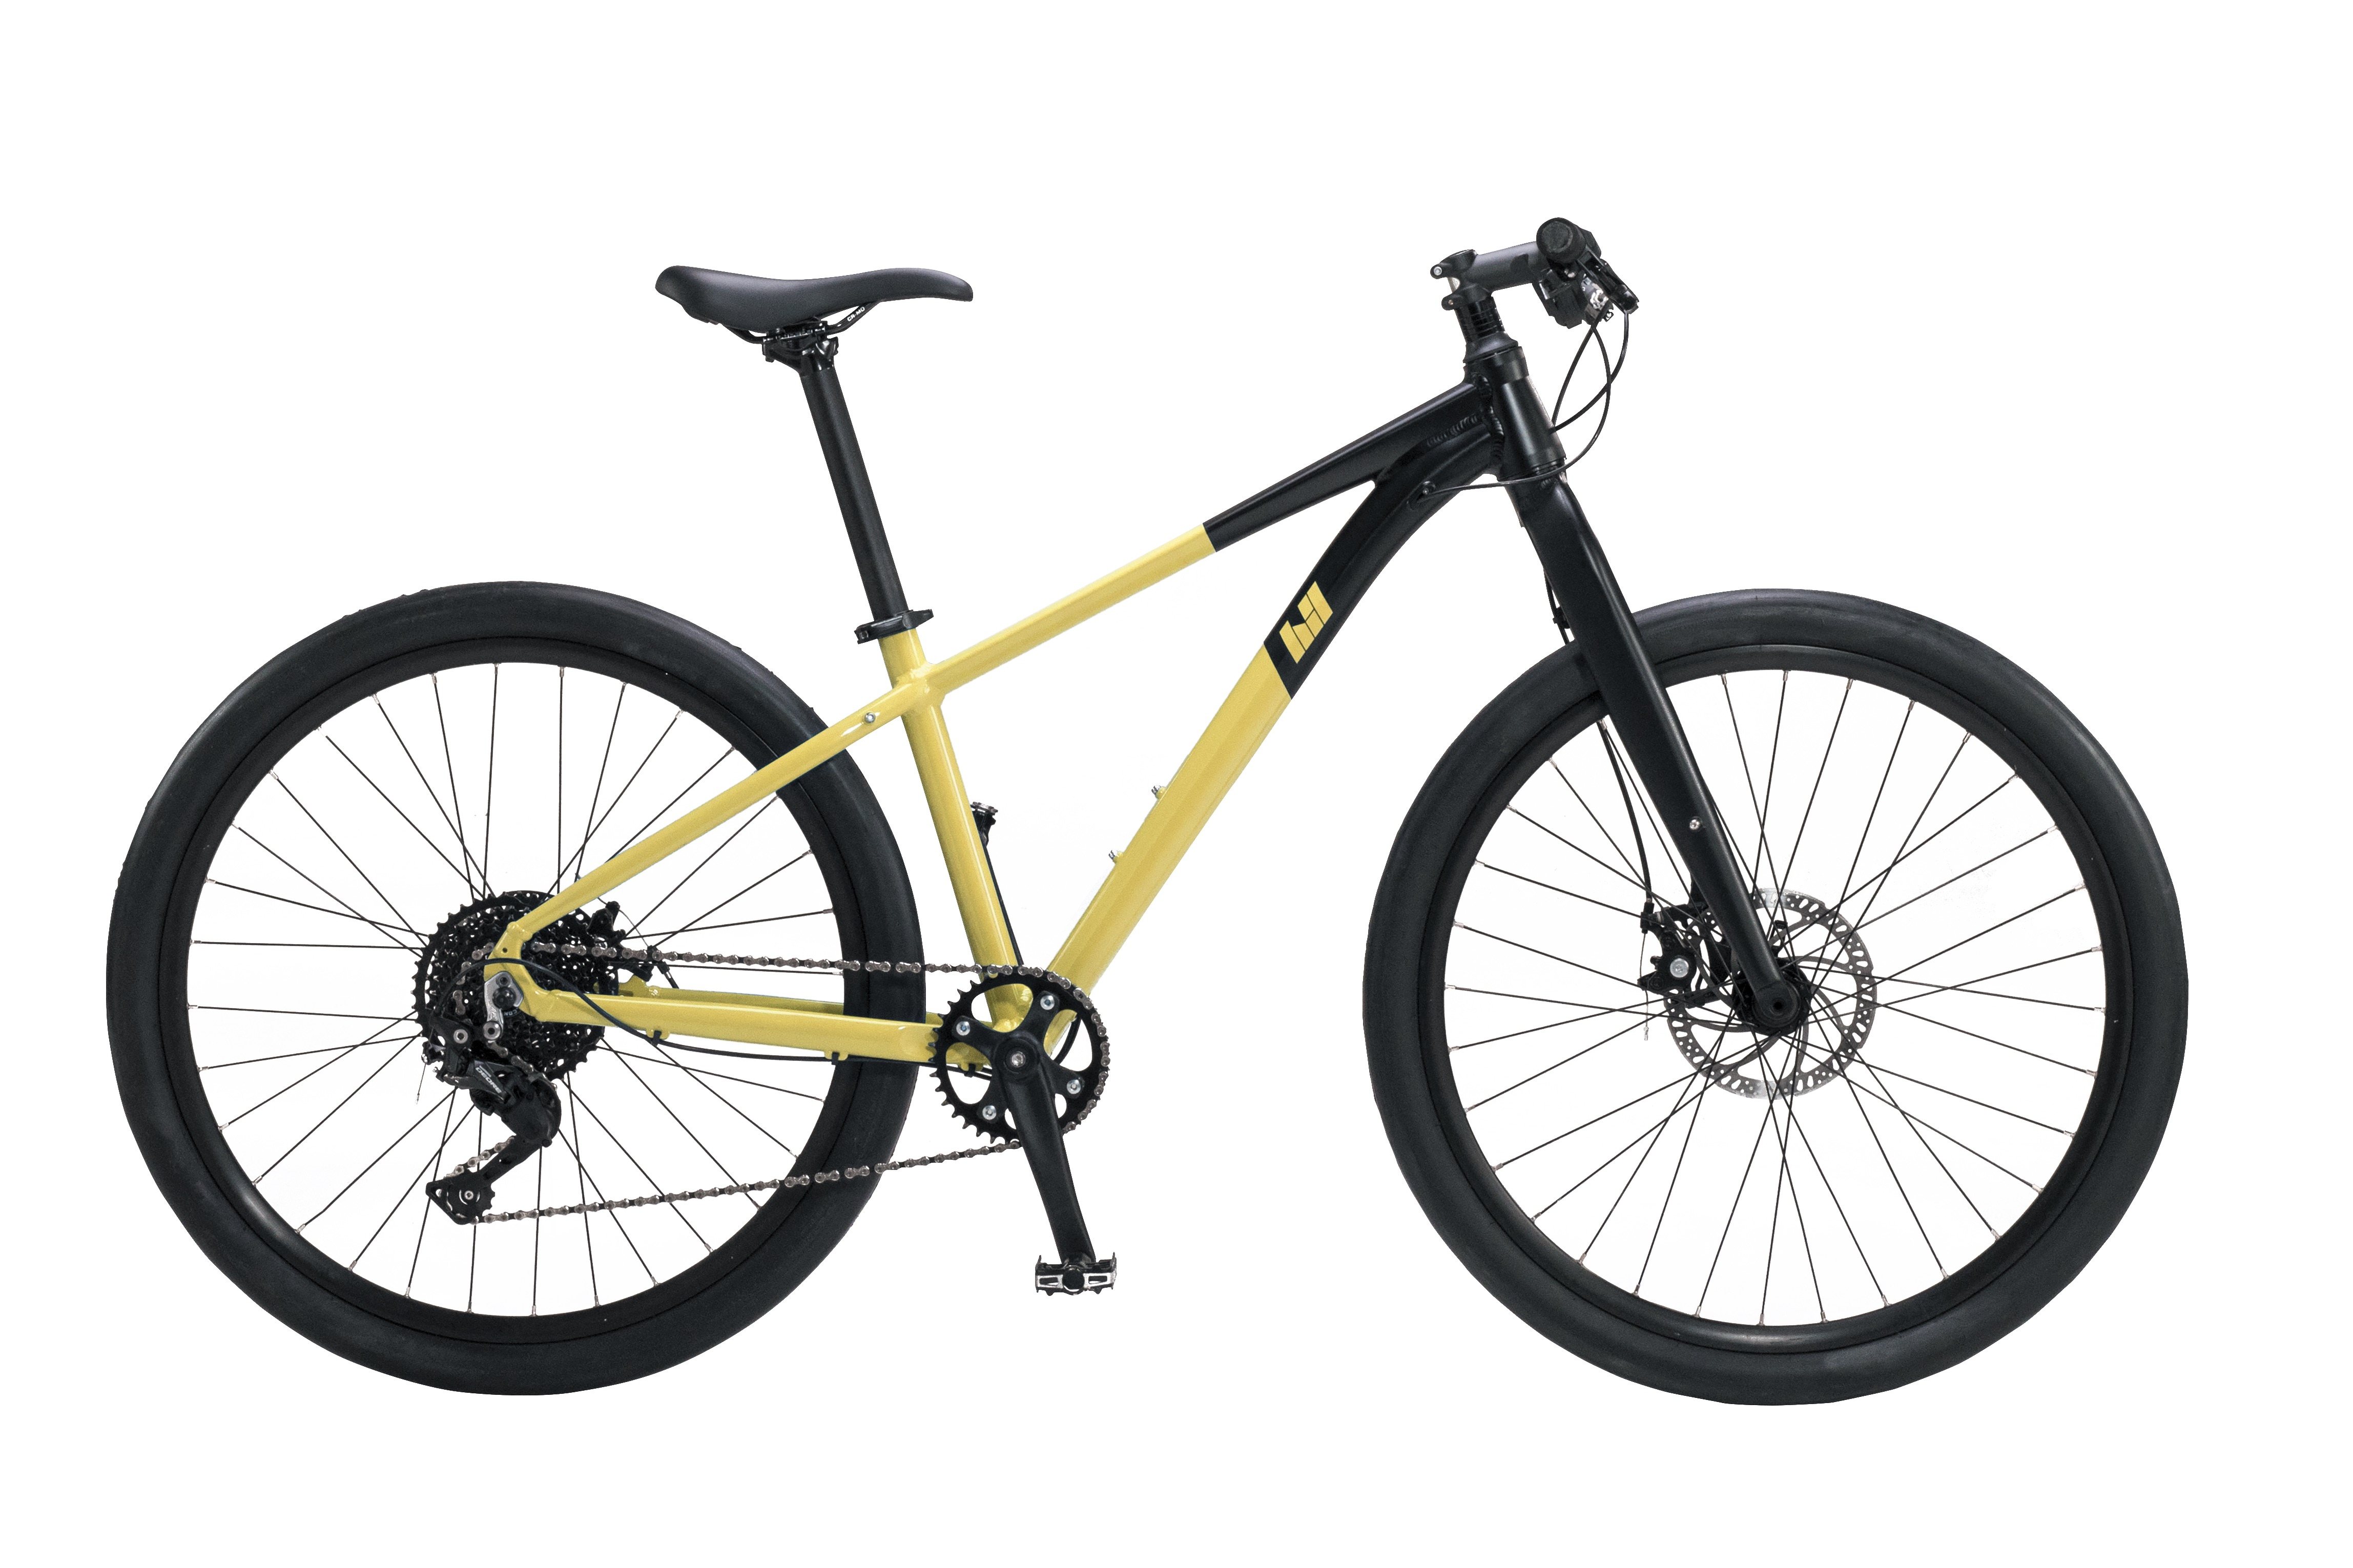 //bikeis.life/wp-content/uploads/2019/03/products_bike_002_yellow.jpg